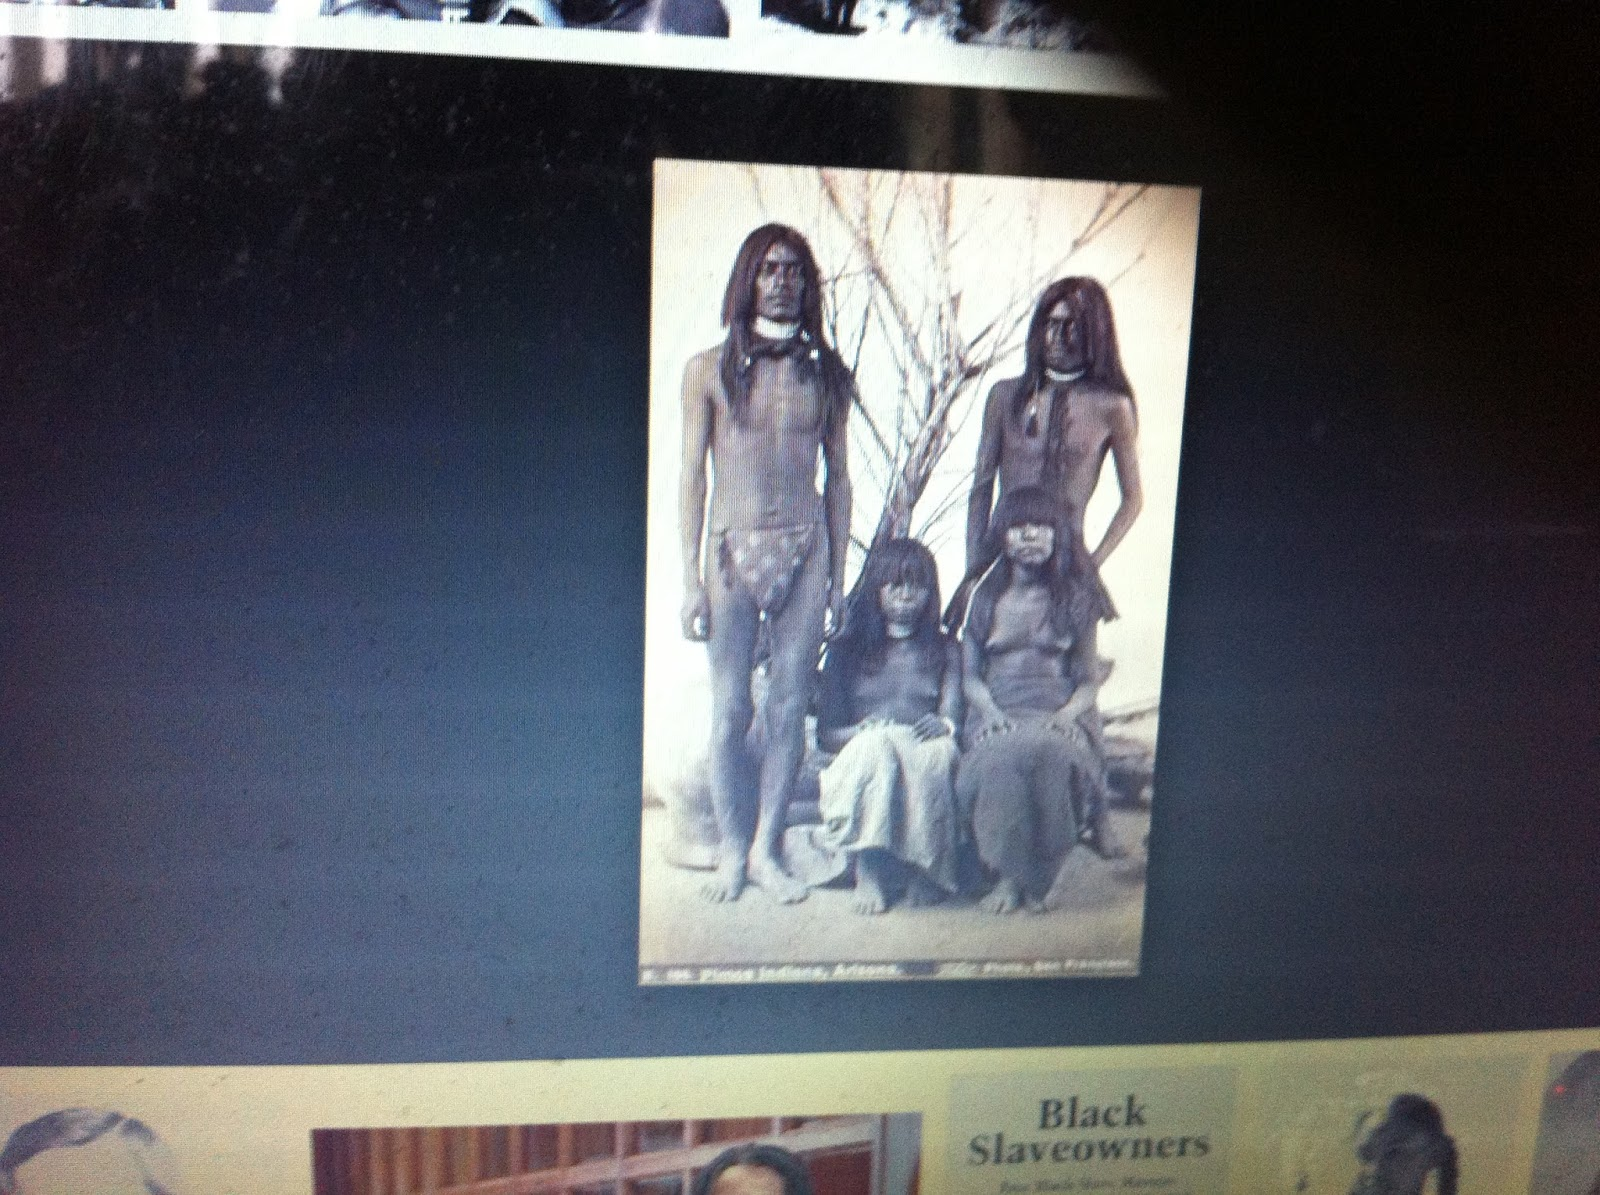 the relationship between white masters and black slaves in the american history While white women may have fared better than black slave women, an undeniable link was created between these two groups through somewhat paralleled experiences  south carolina she hopes.